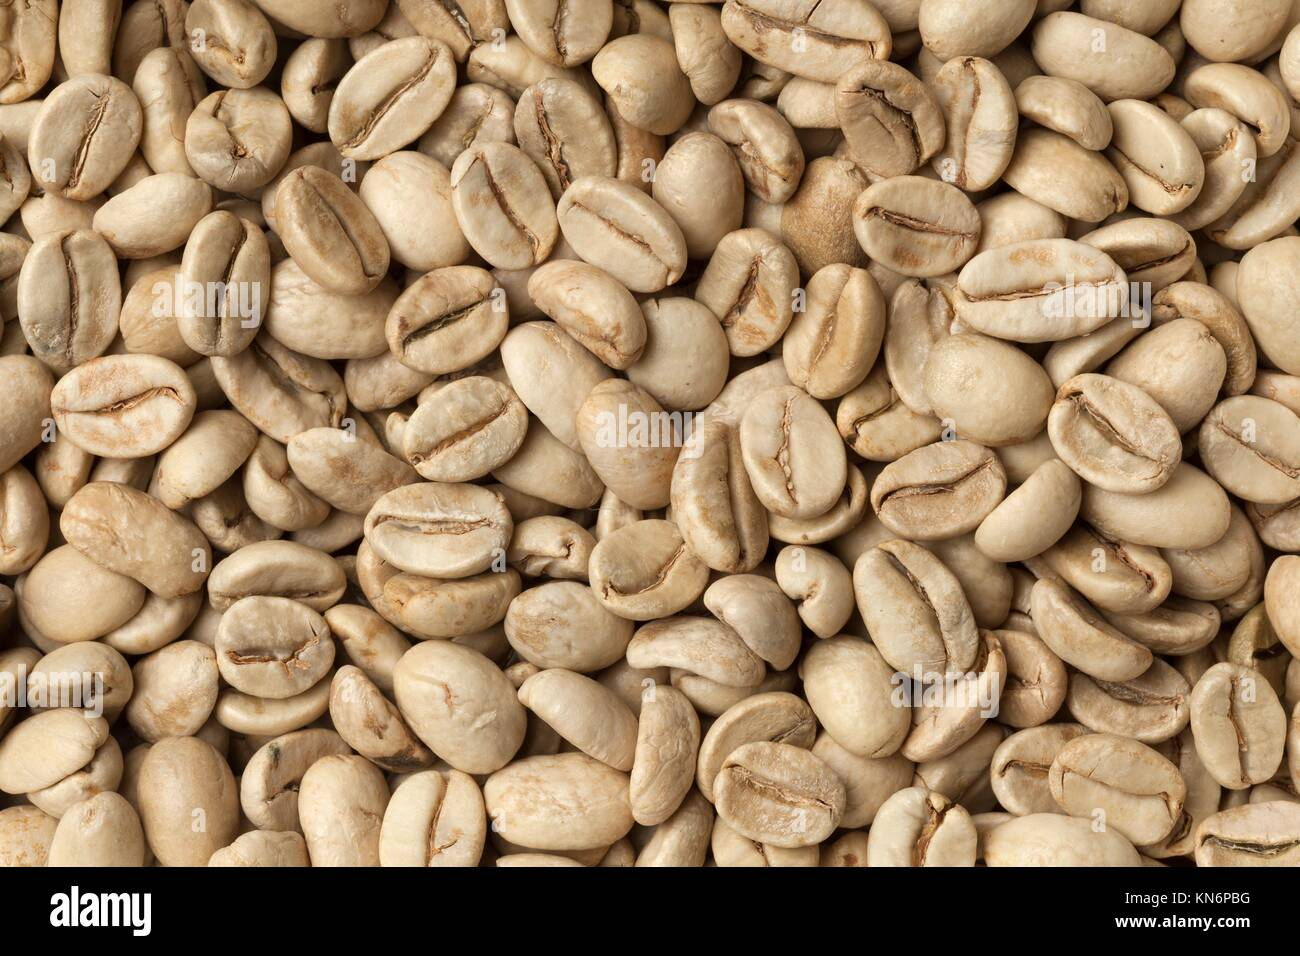 Unroasted Coffee Beans >> Malabar Green Unroasted Coffee Beans From India Full Frame